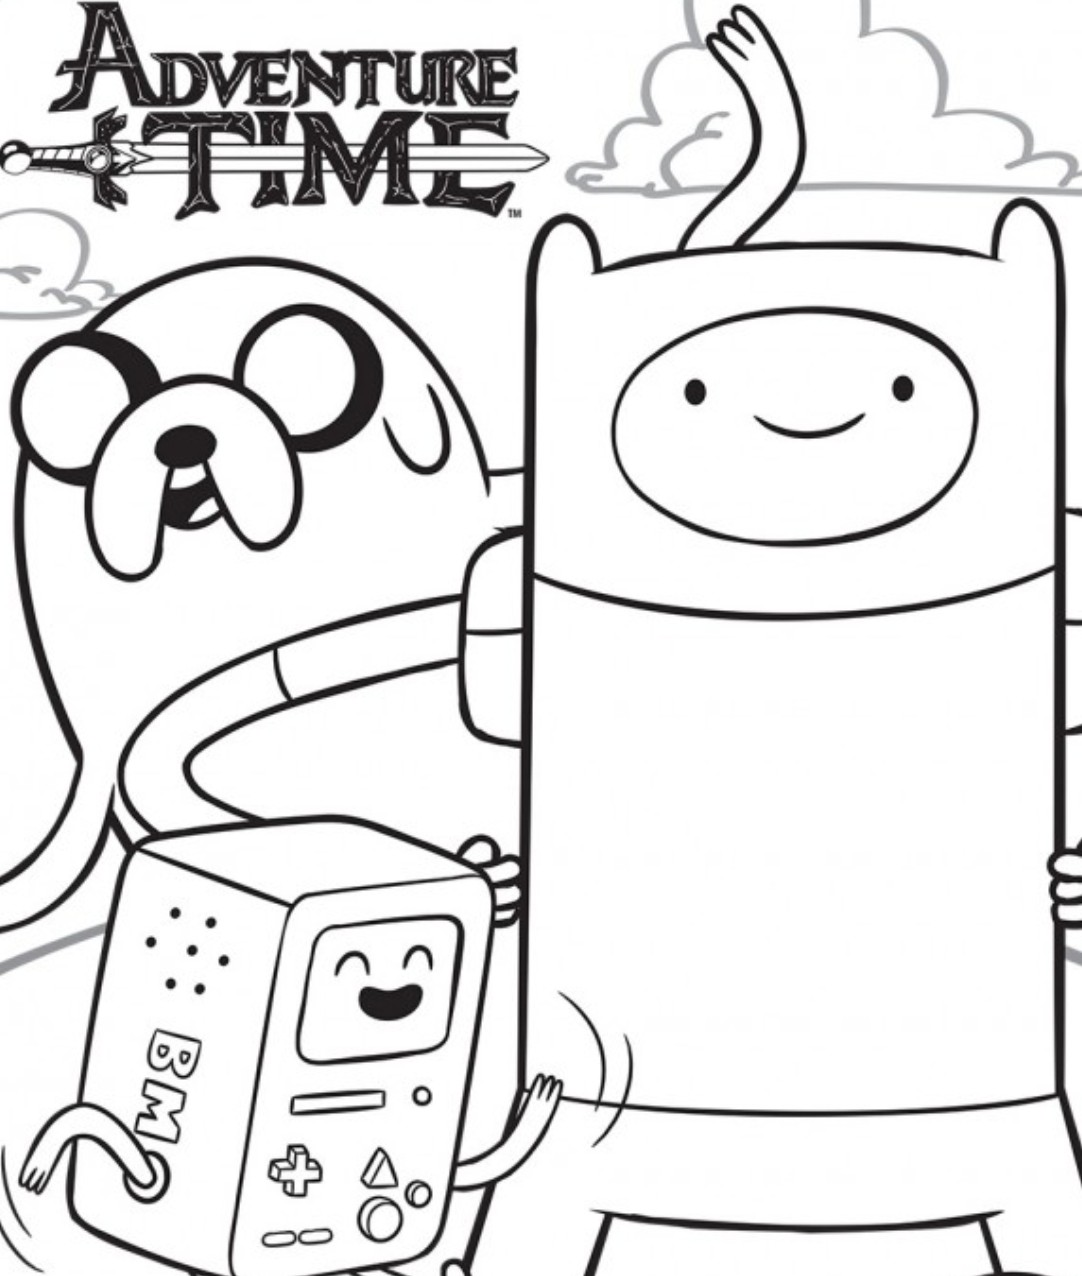 coloring pages of adventure time - photo#13